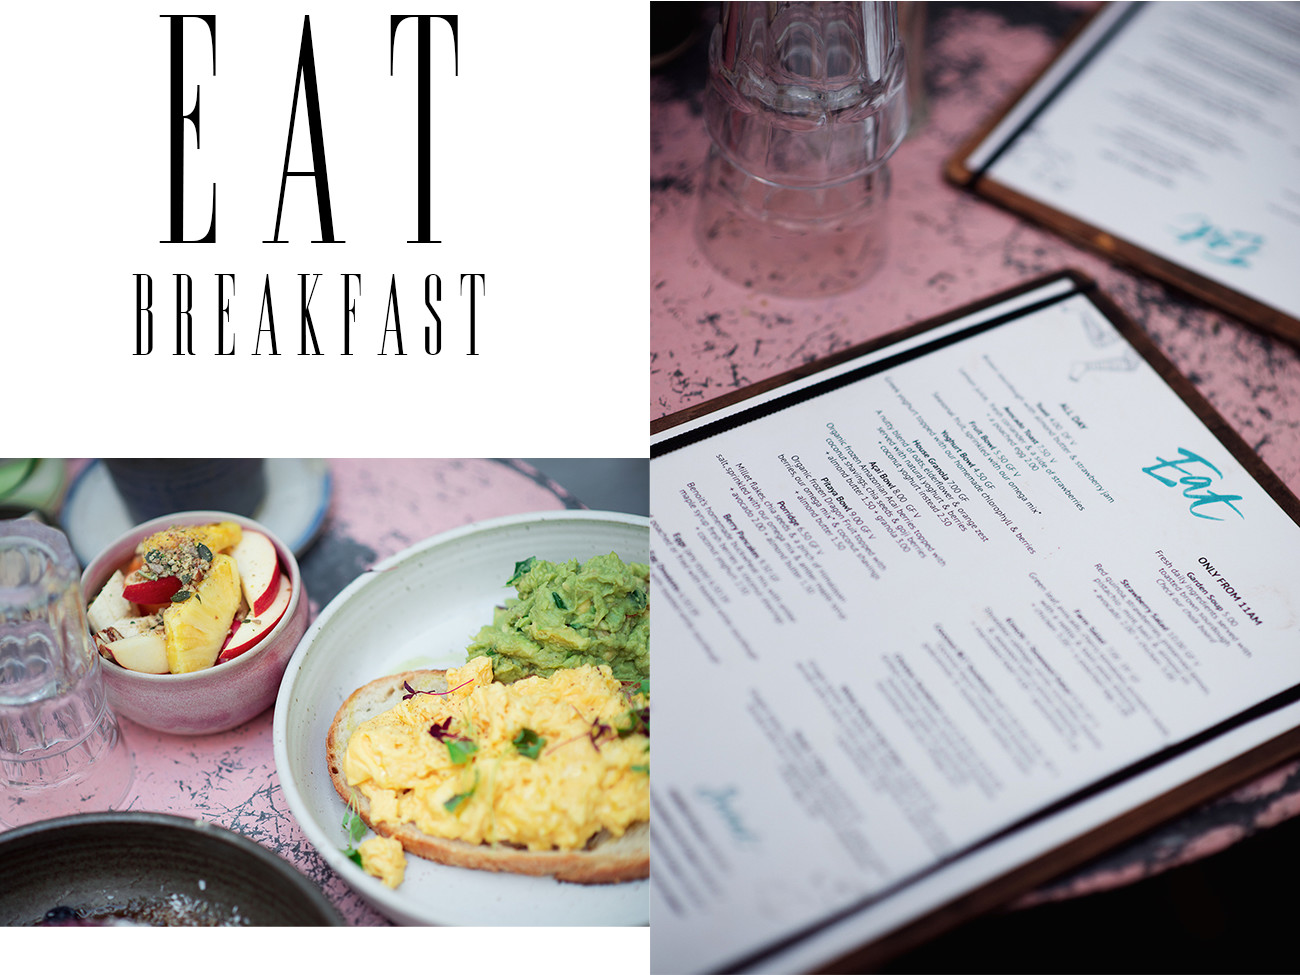 Breakfast-Travelguide-London-Farmgirl-Sequinsophia-Fashionblogger-1-Unbenannt-3